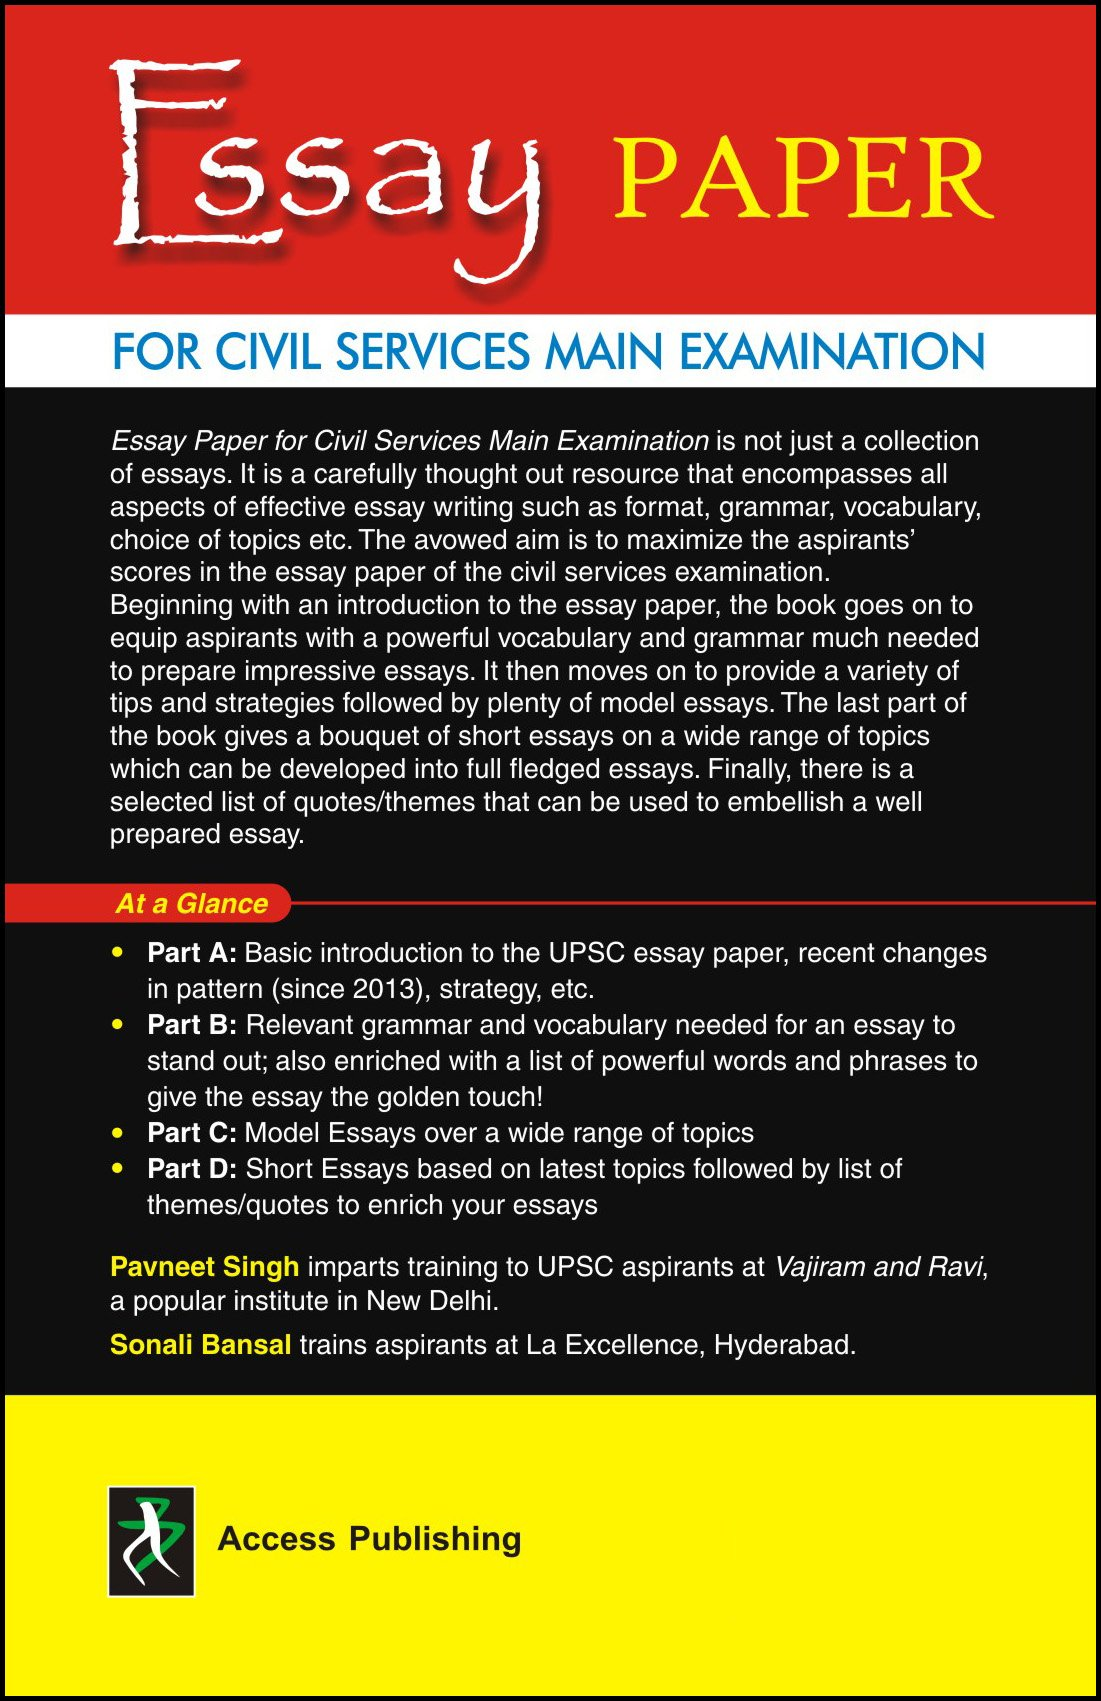 essay to buy essay paper for civil services main examination book  buy essay paper for civil services main examination book online at buy essay paper for civil